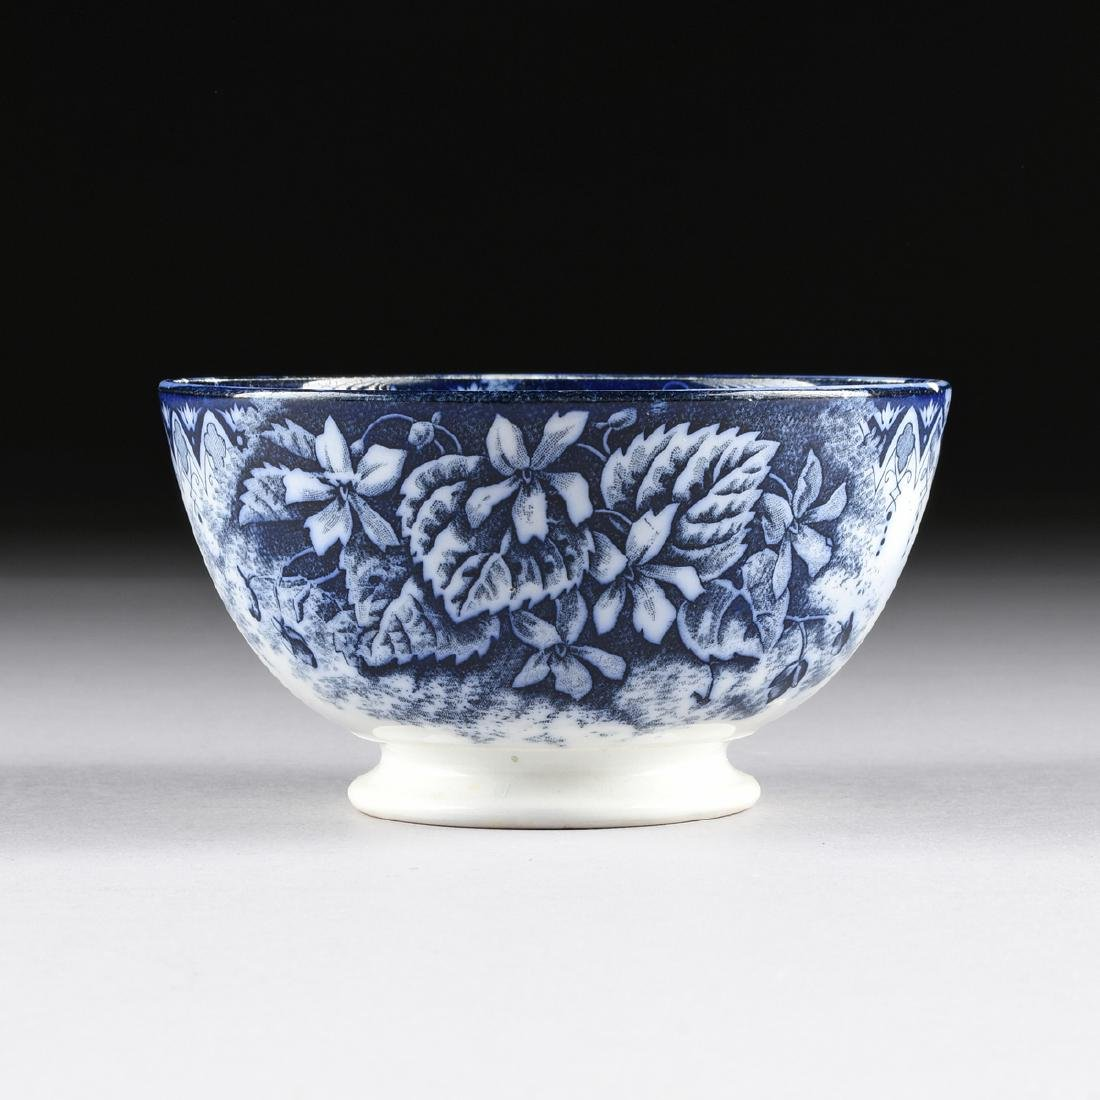 AN ANTIQUE KELLER & GUERIN BLUE AND WHITE DECORATED